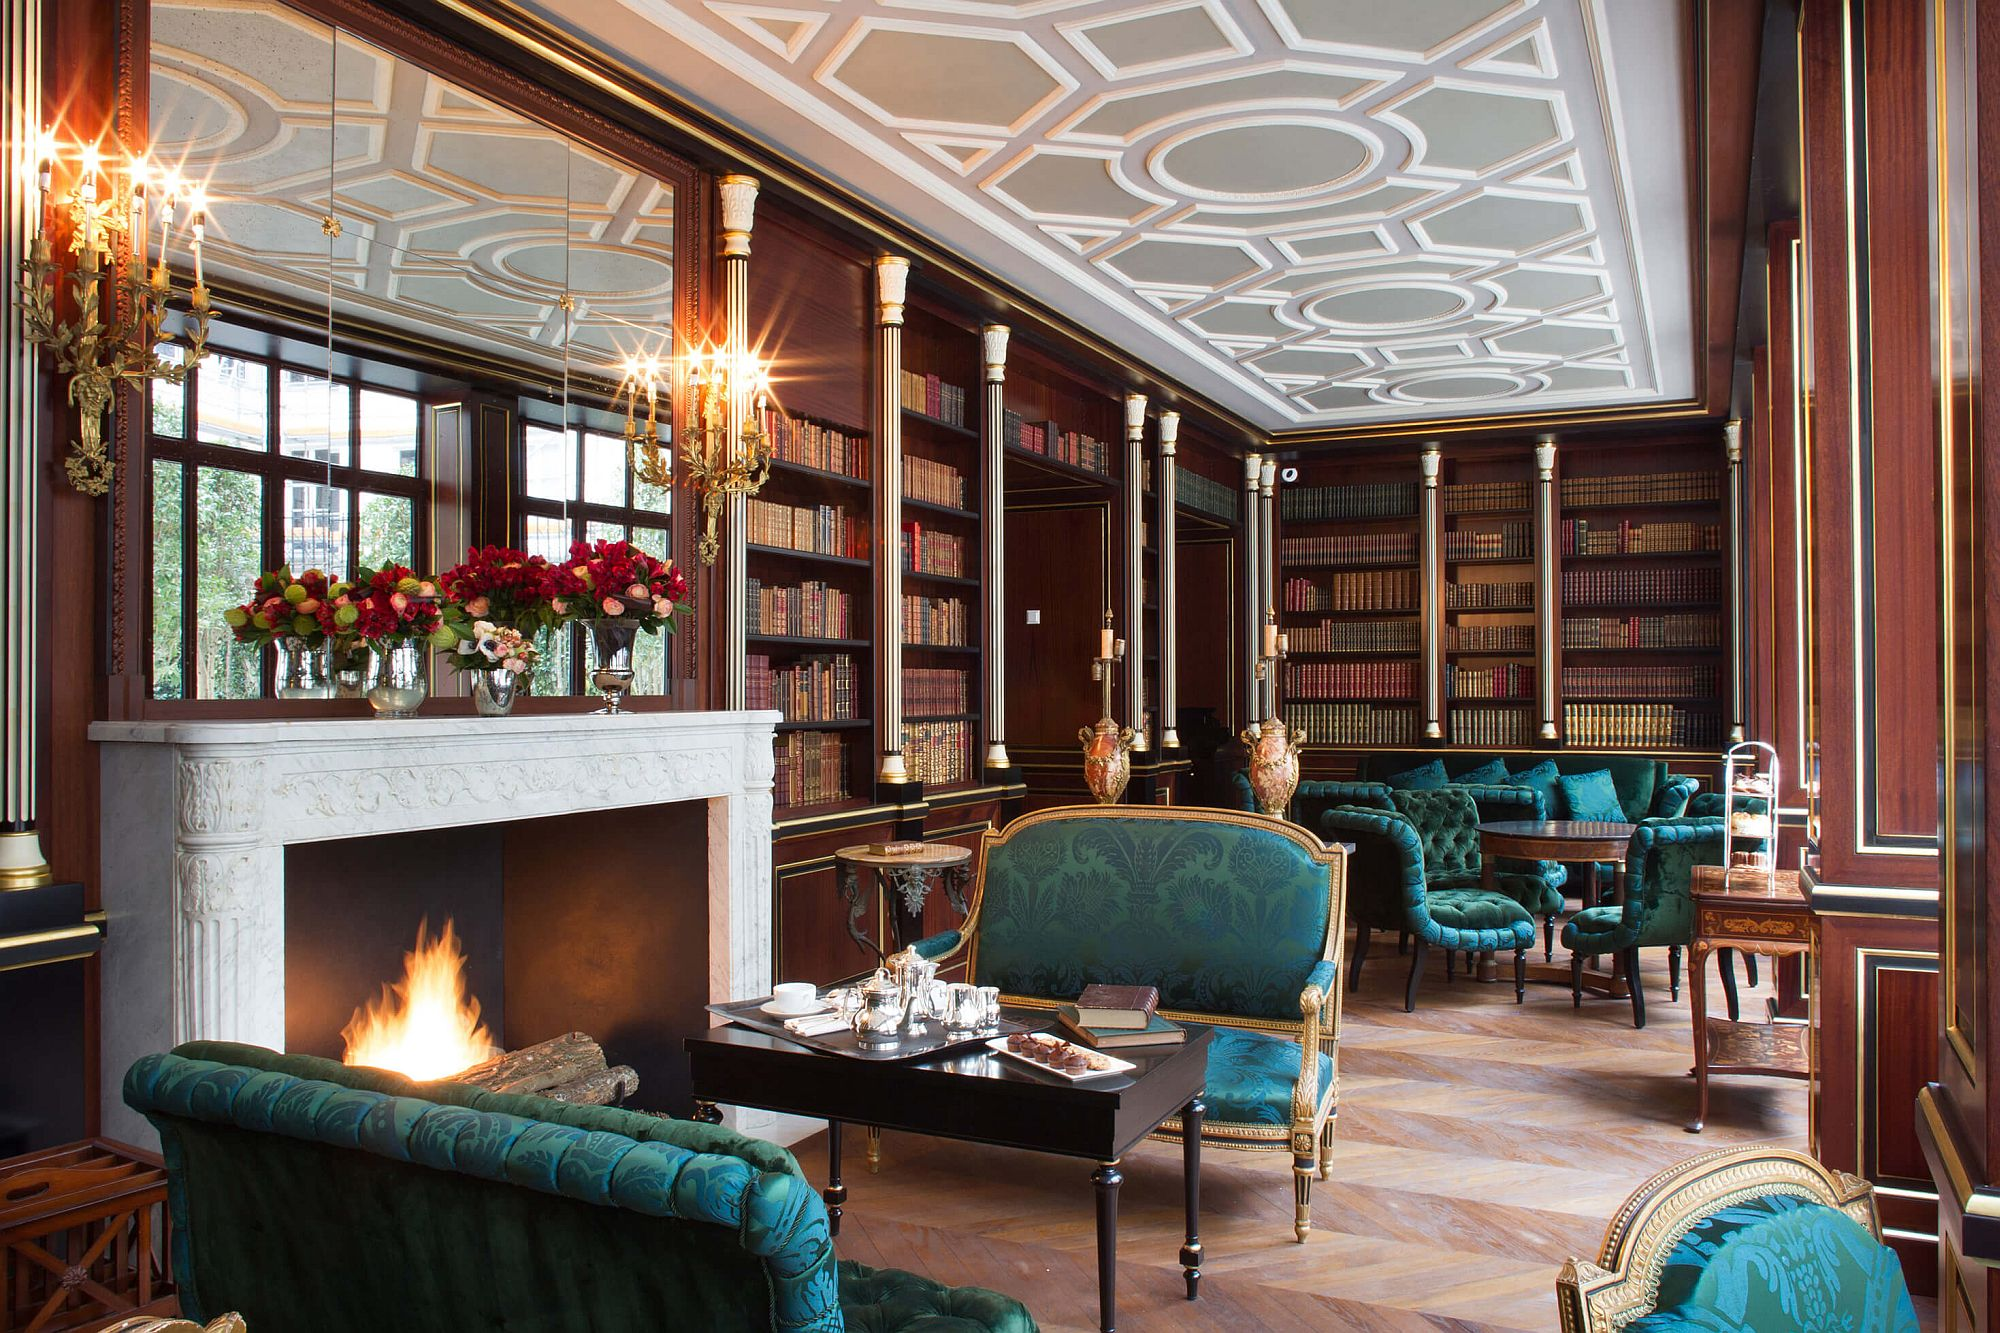 Grand library at La Réserve Paris Hotel and Spa